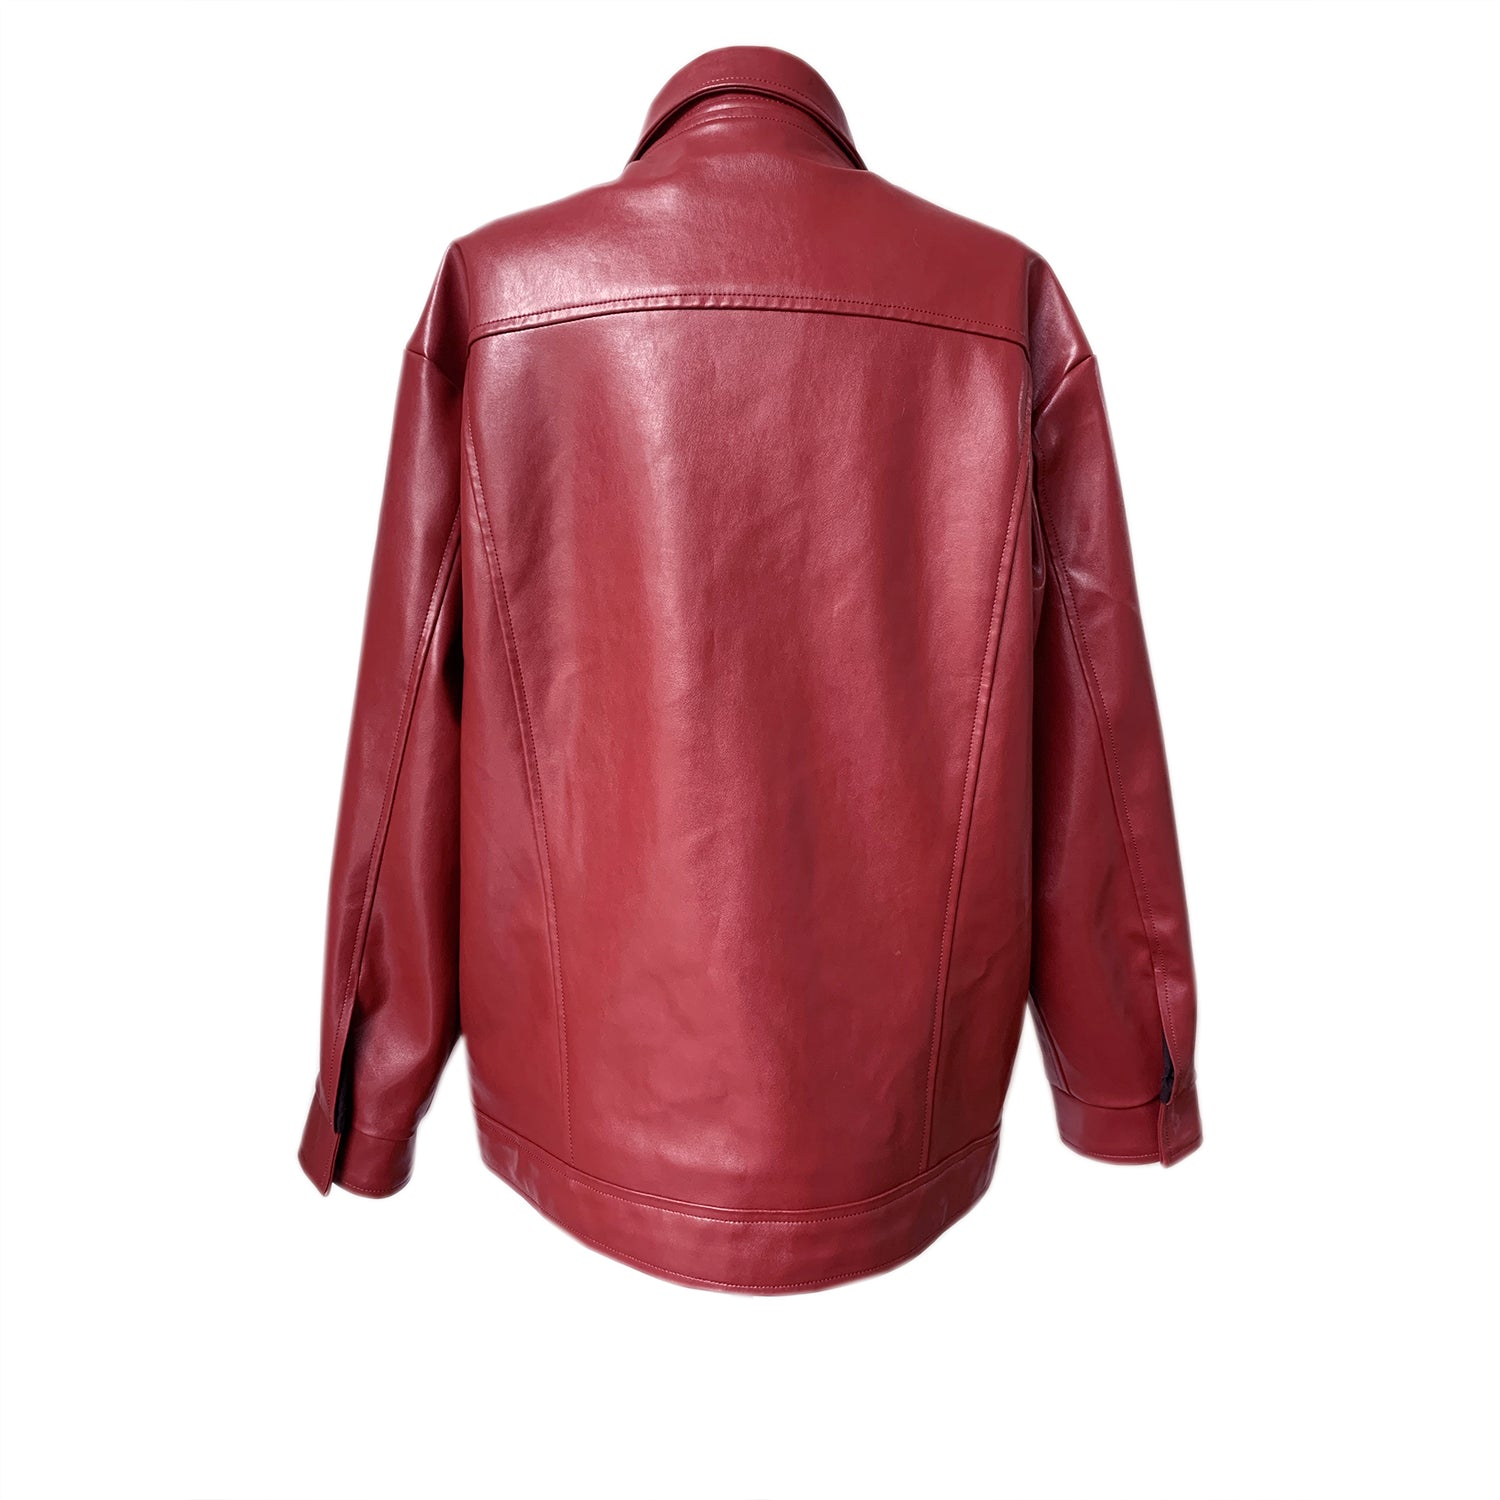 products/redcactusjacket_back.jpg